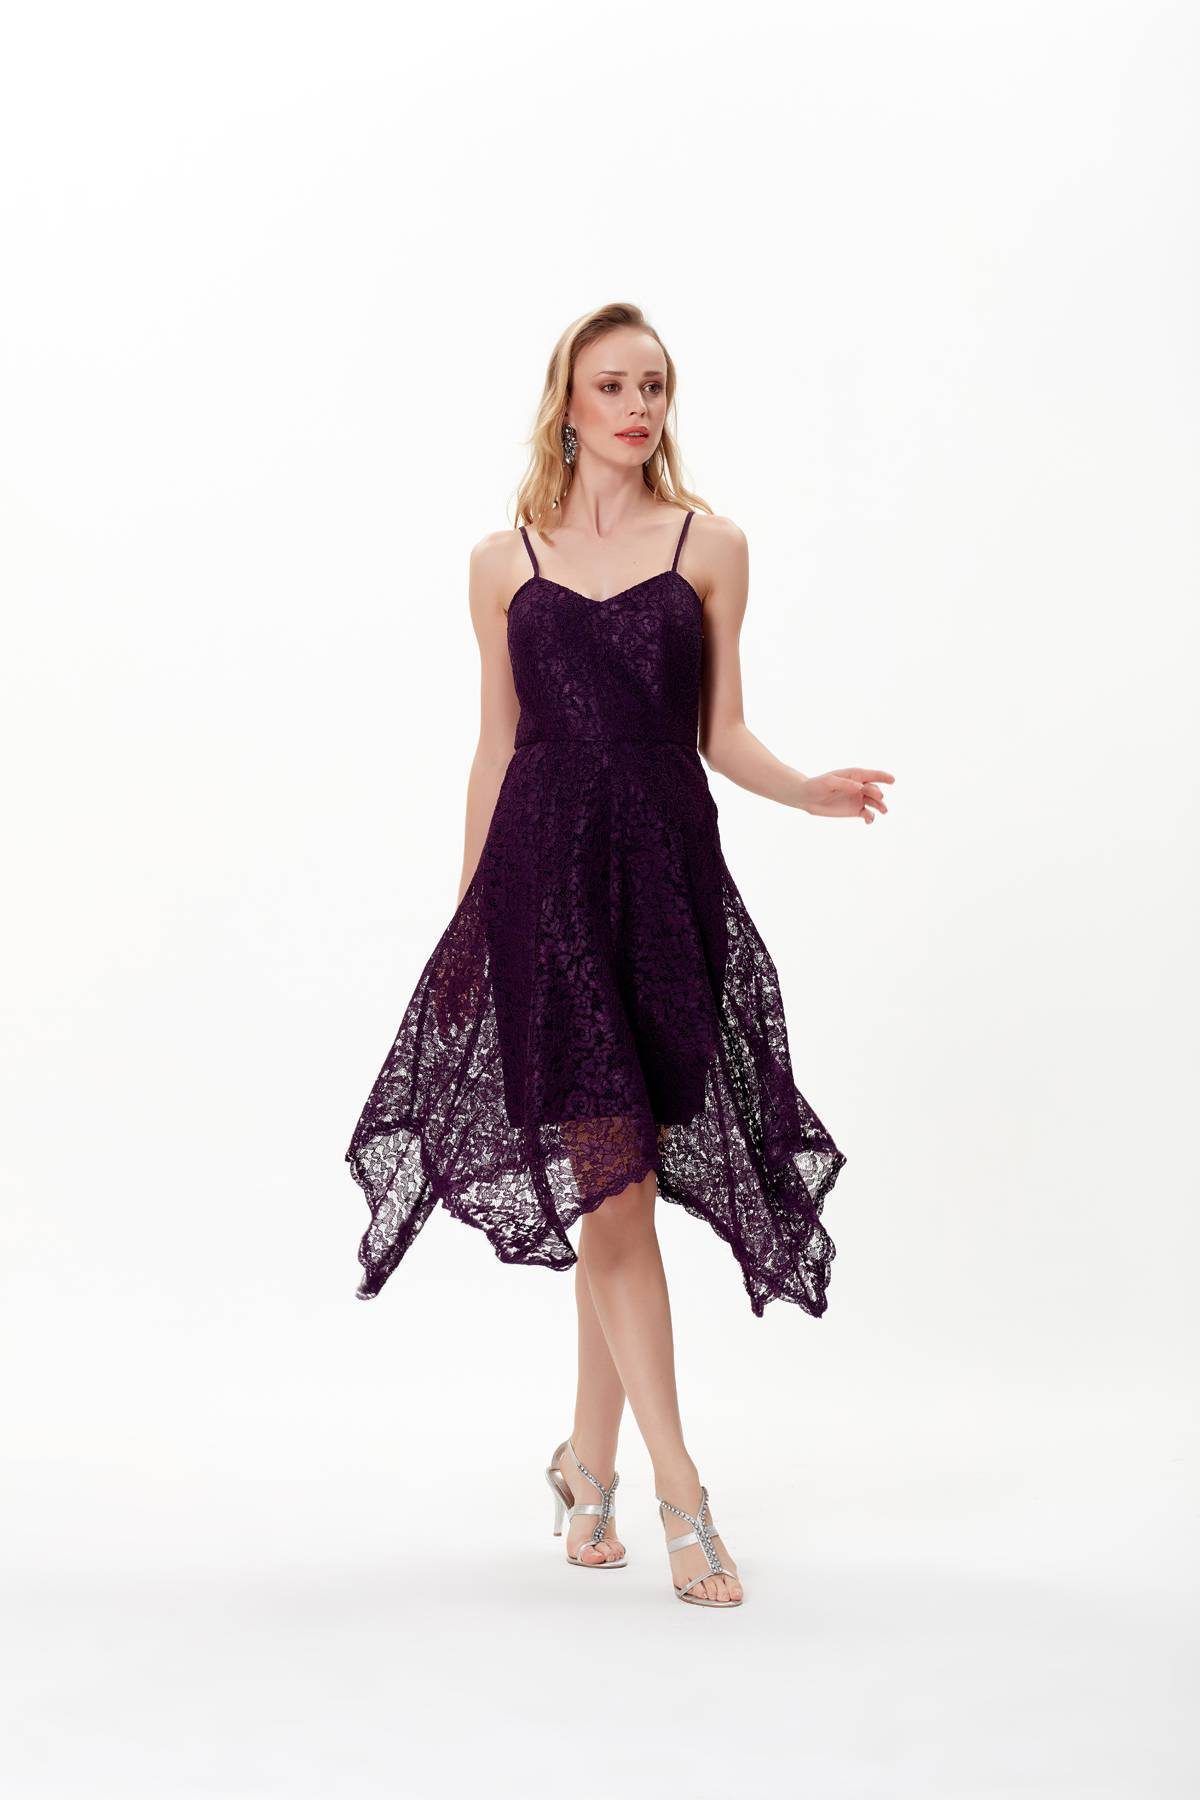 Evening Gown 1560285268PG1